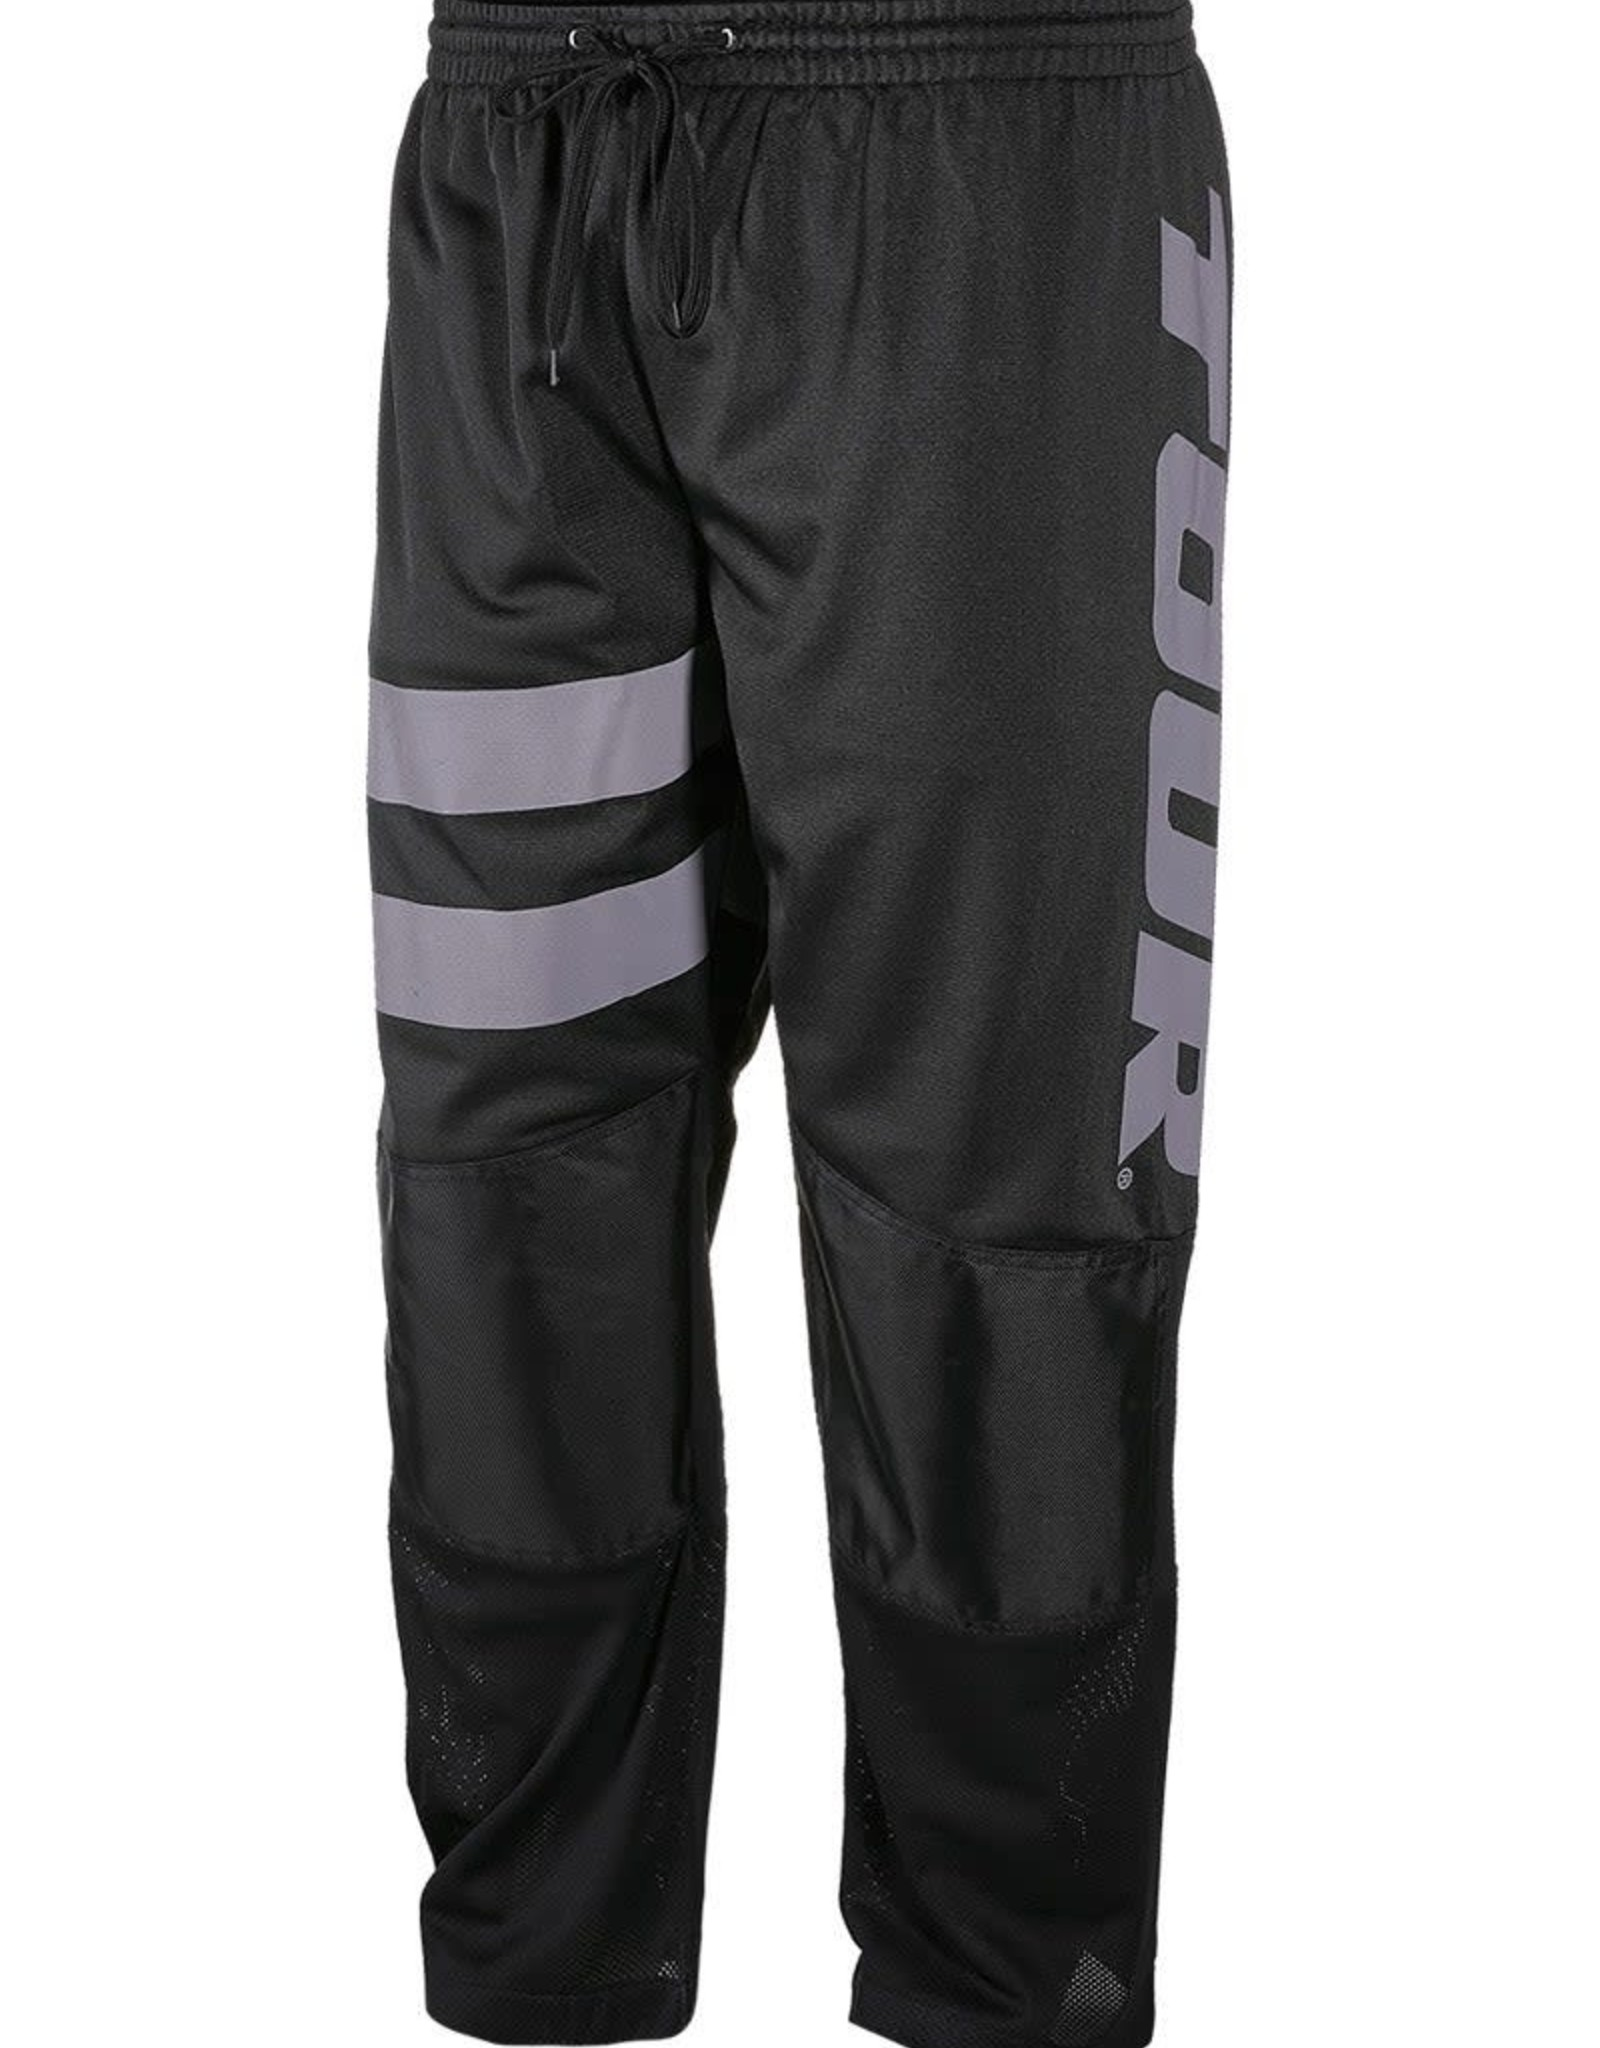 Tour Tour Spartan XT Roller Hockey Pants